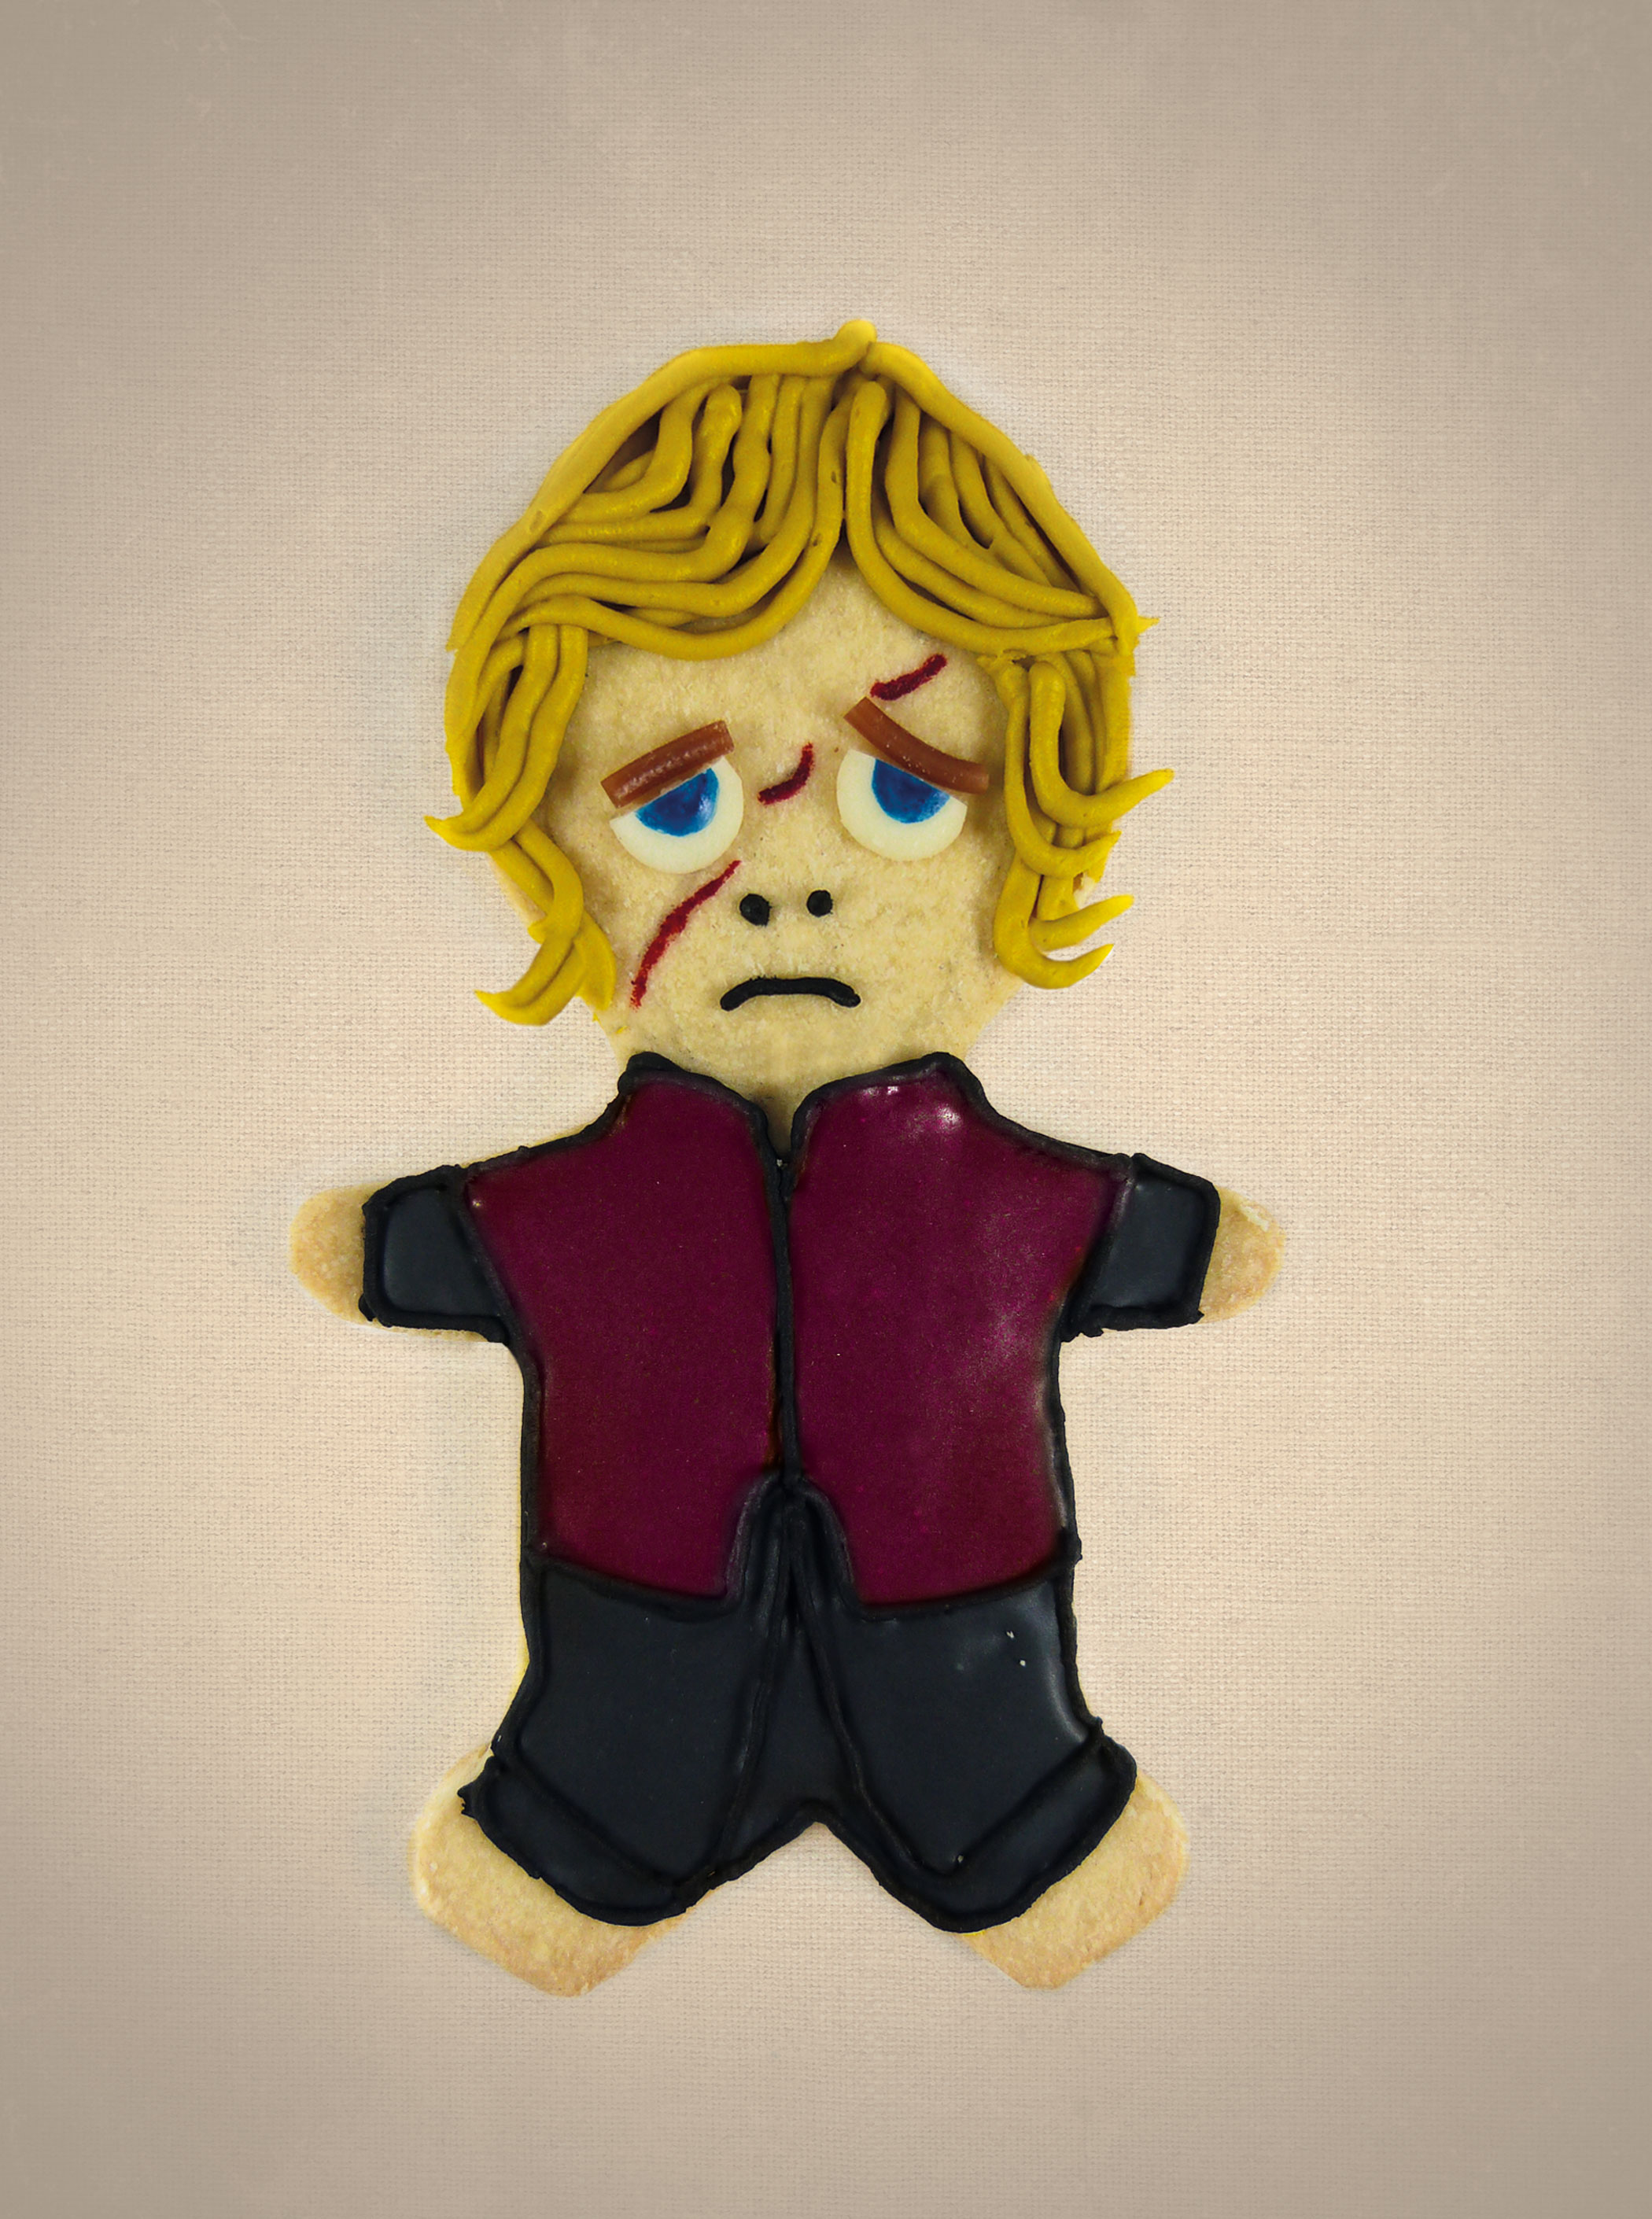 Tyrion's Shortbread from the book Games of Scones